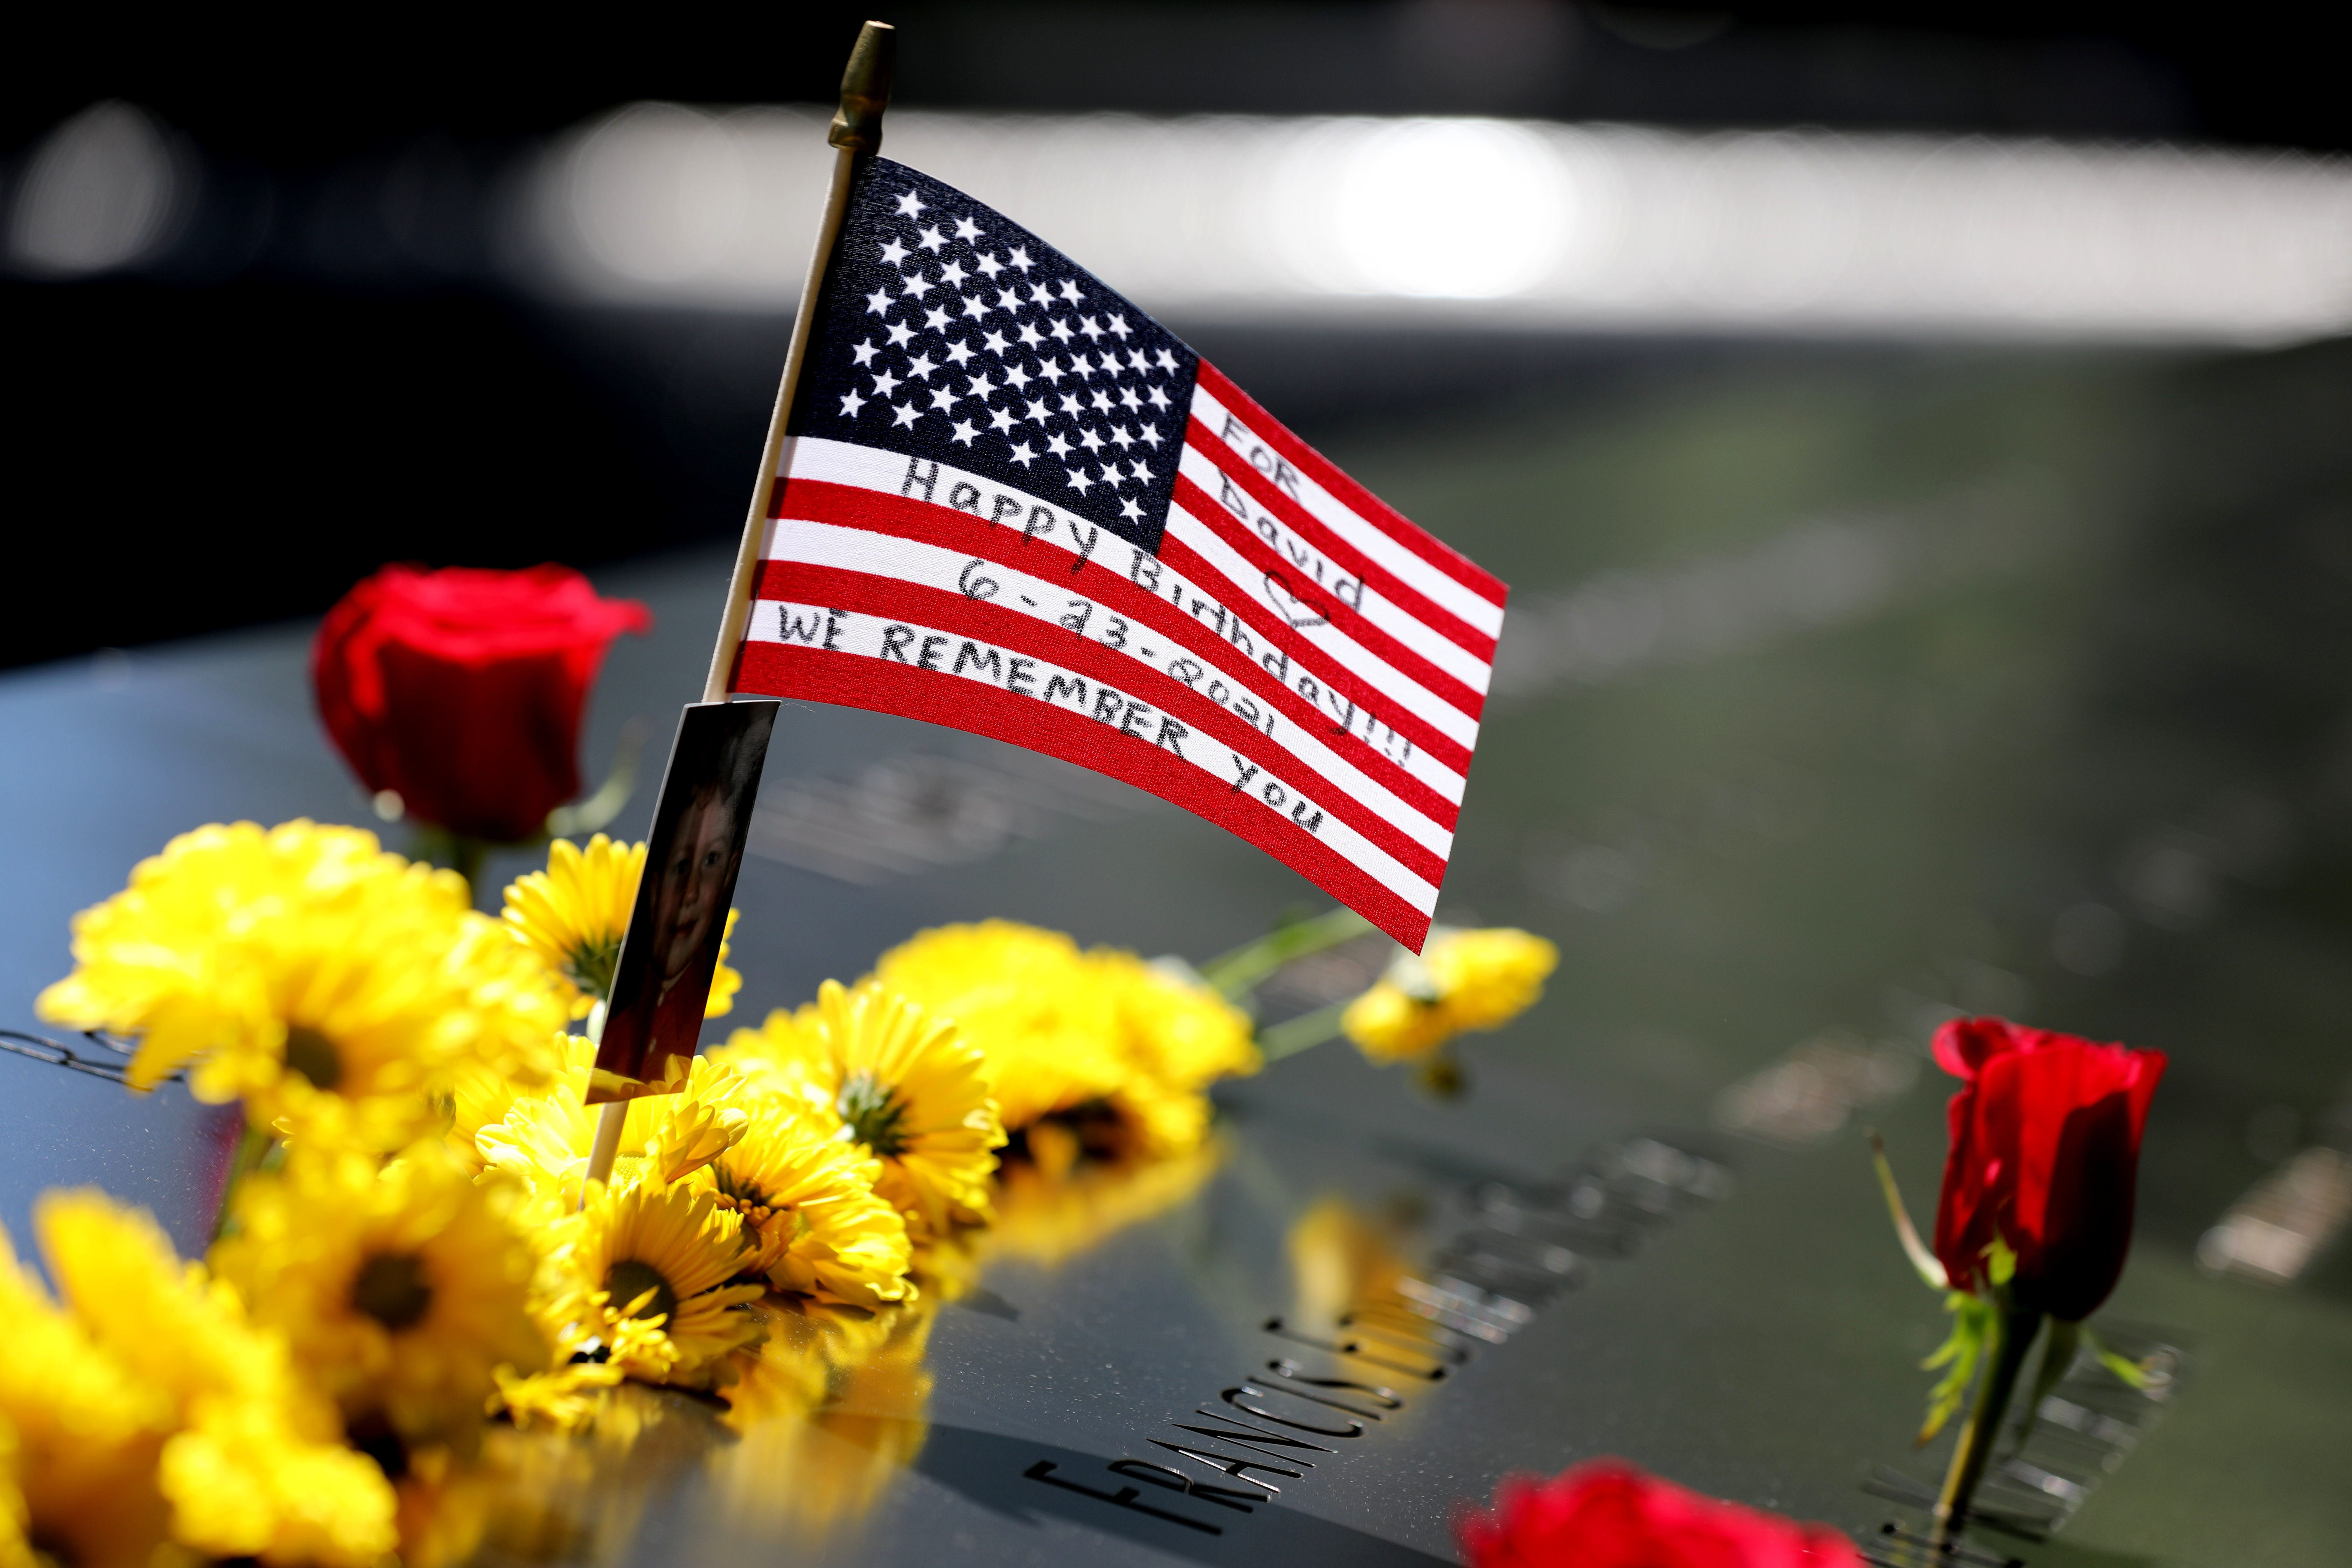 A small American flag with a note remembering a victim of the Sept. 11 attacks is left at the 9/11 Memorial at the World Trade Center in Manhattan on June 24, 2021.